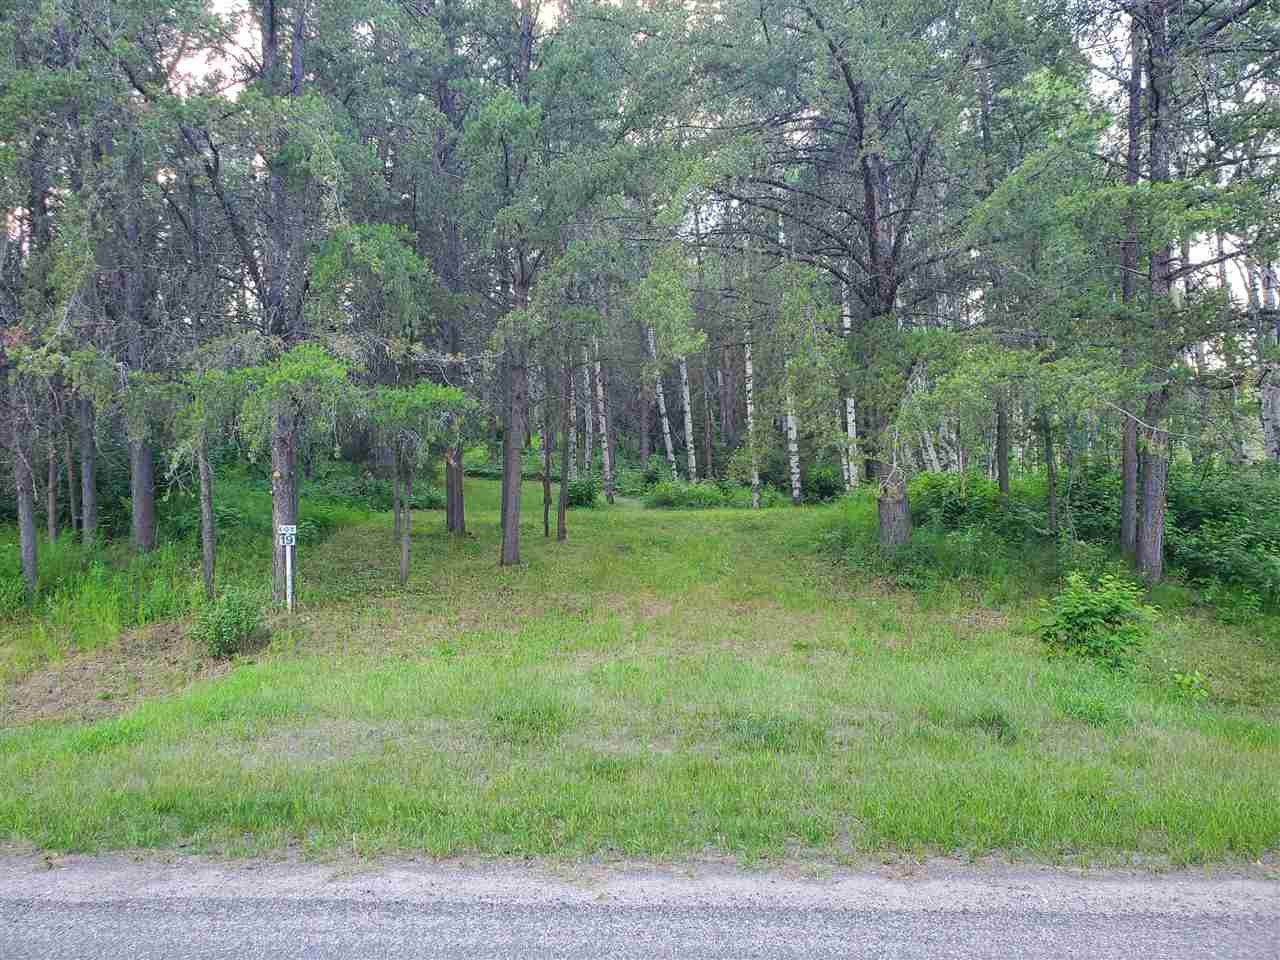 Main Photo: 19 26213 TWP RD 512: Rural Parkland County Rural Land/Vacant Lot for sale : MLS®# E4205090